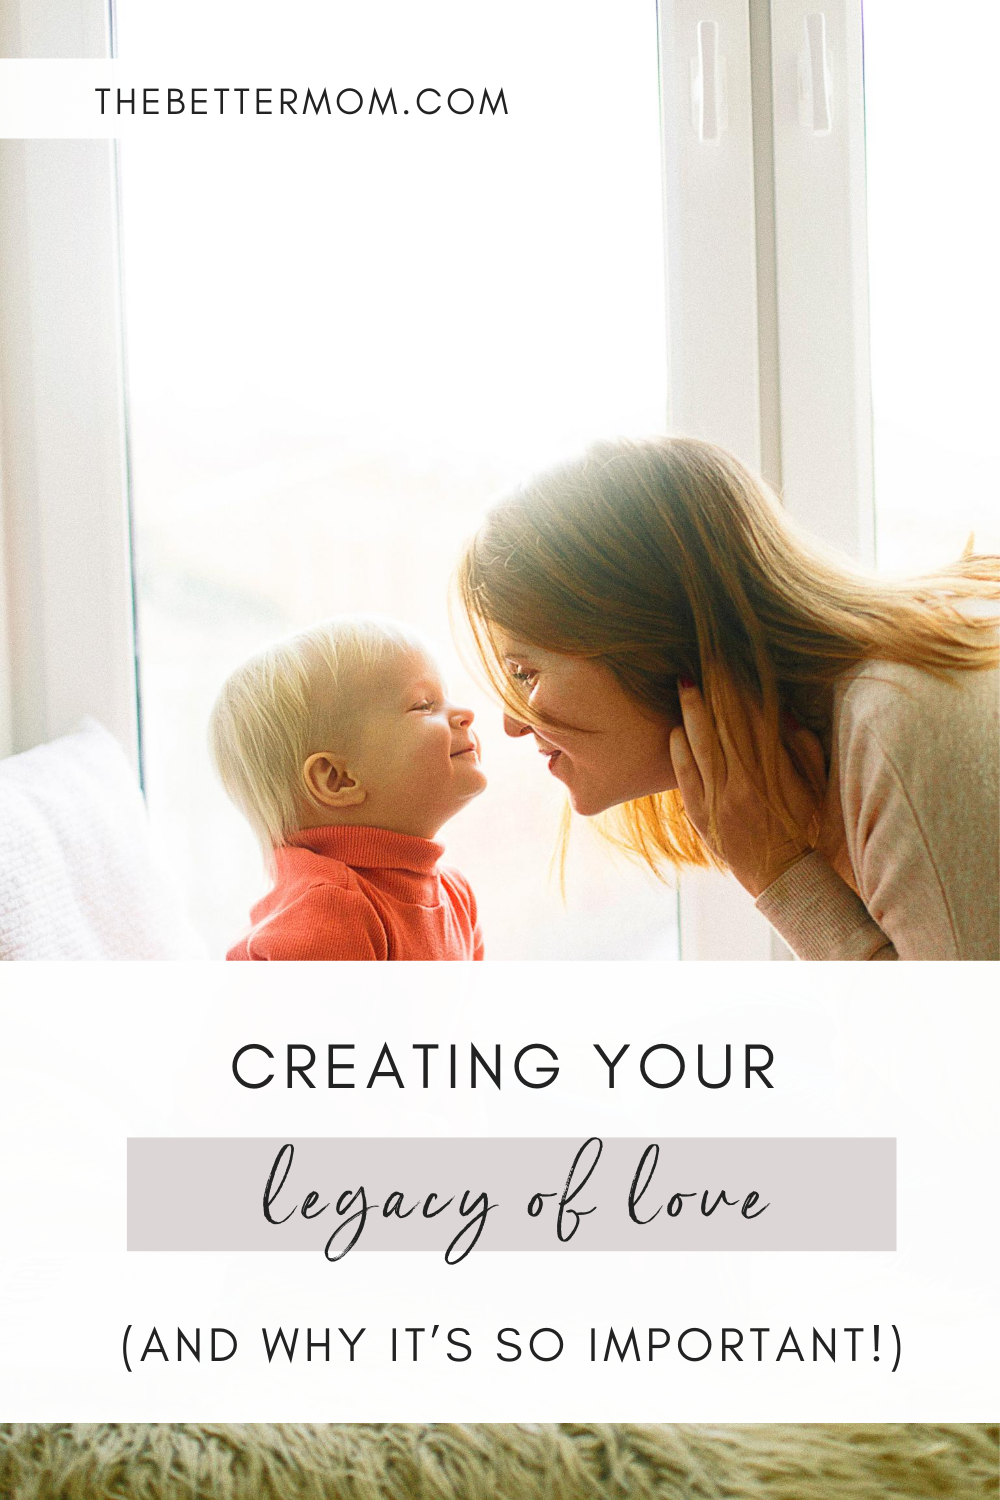 When we love our children well, our actions are a reflection of God's love. These acts don't have to be extravagant, but they allow us to create a legacy of love that we can pass down to our children and grandchildren. Learn more about this 'legacy of love' and why it's so important now!